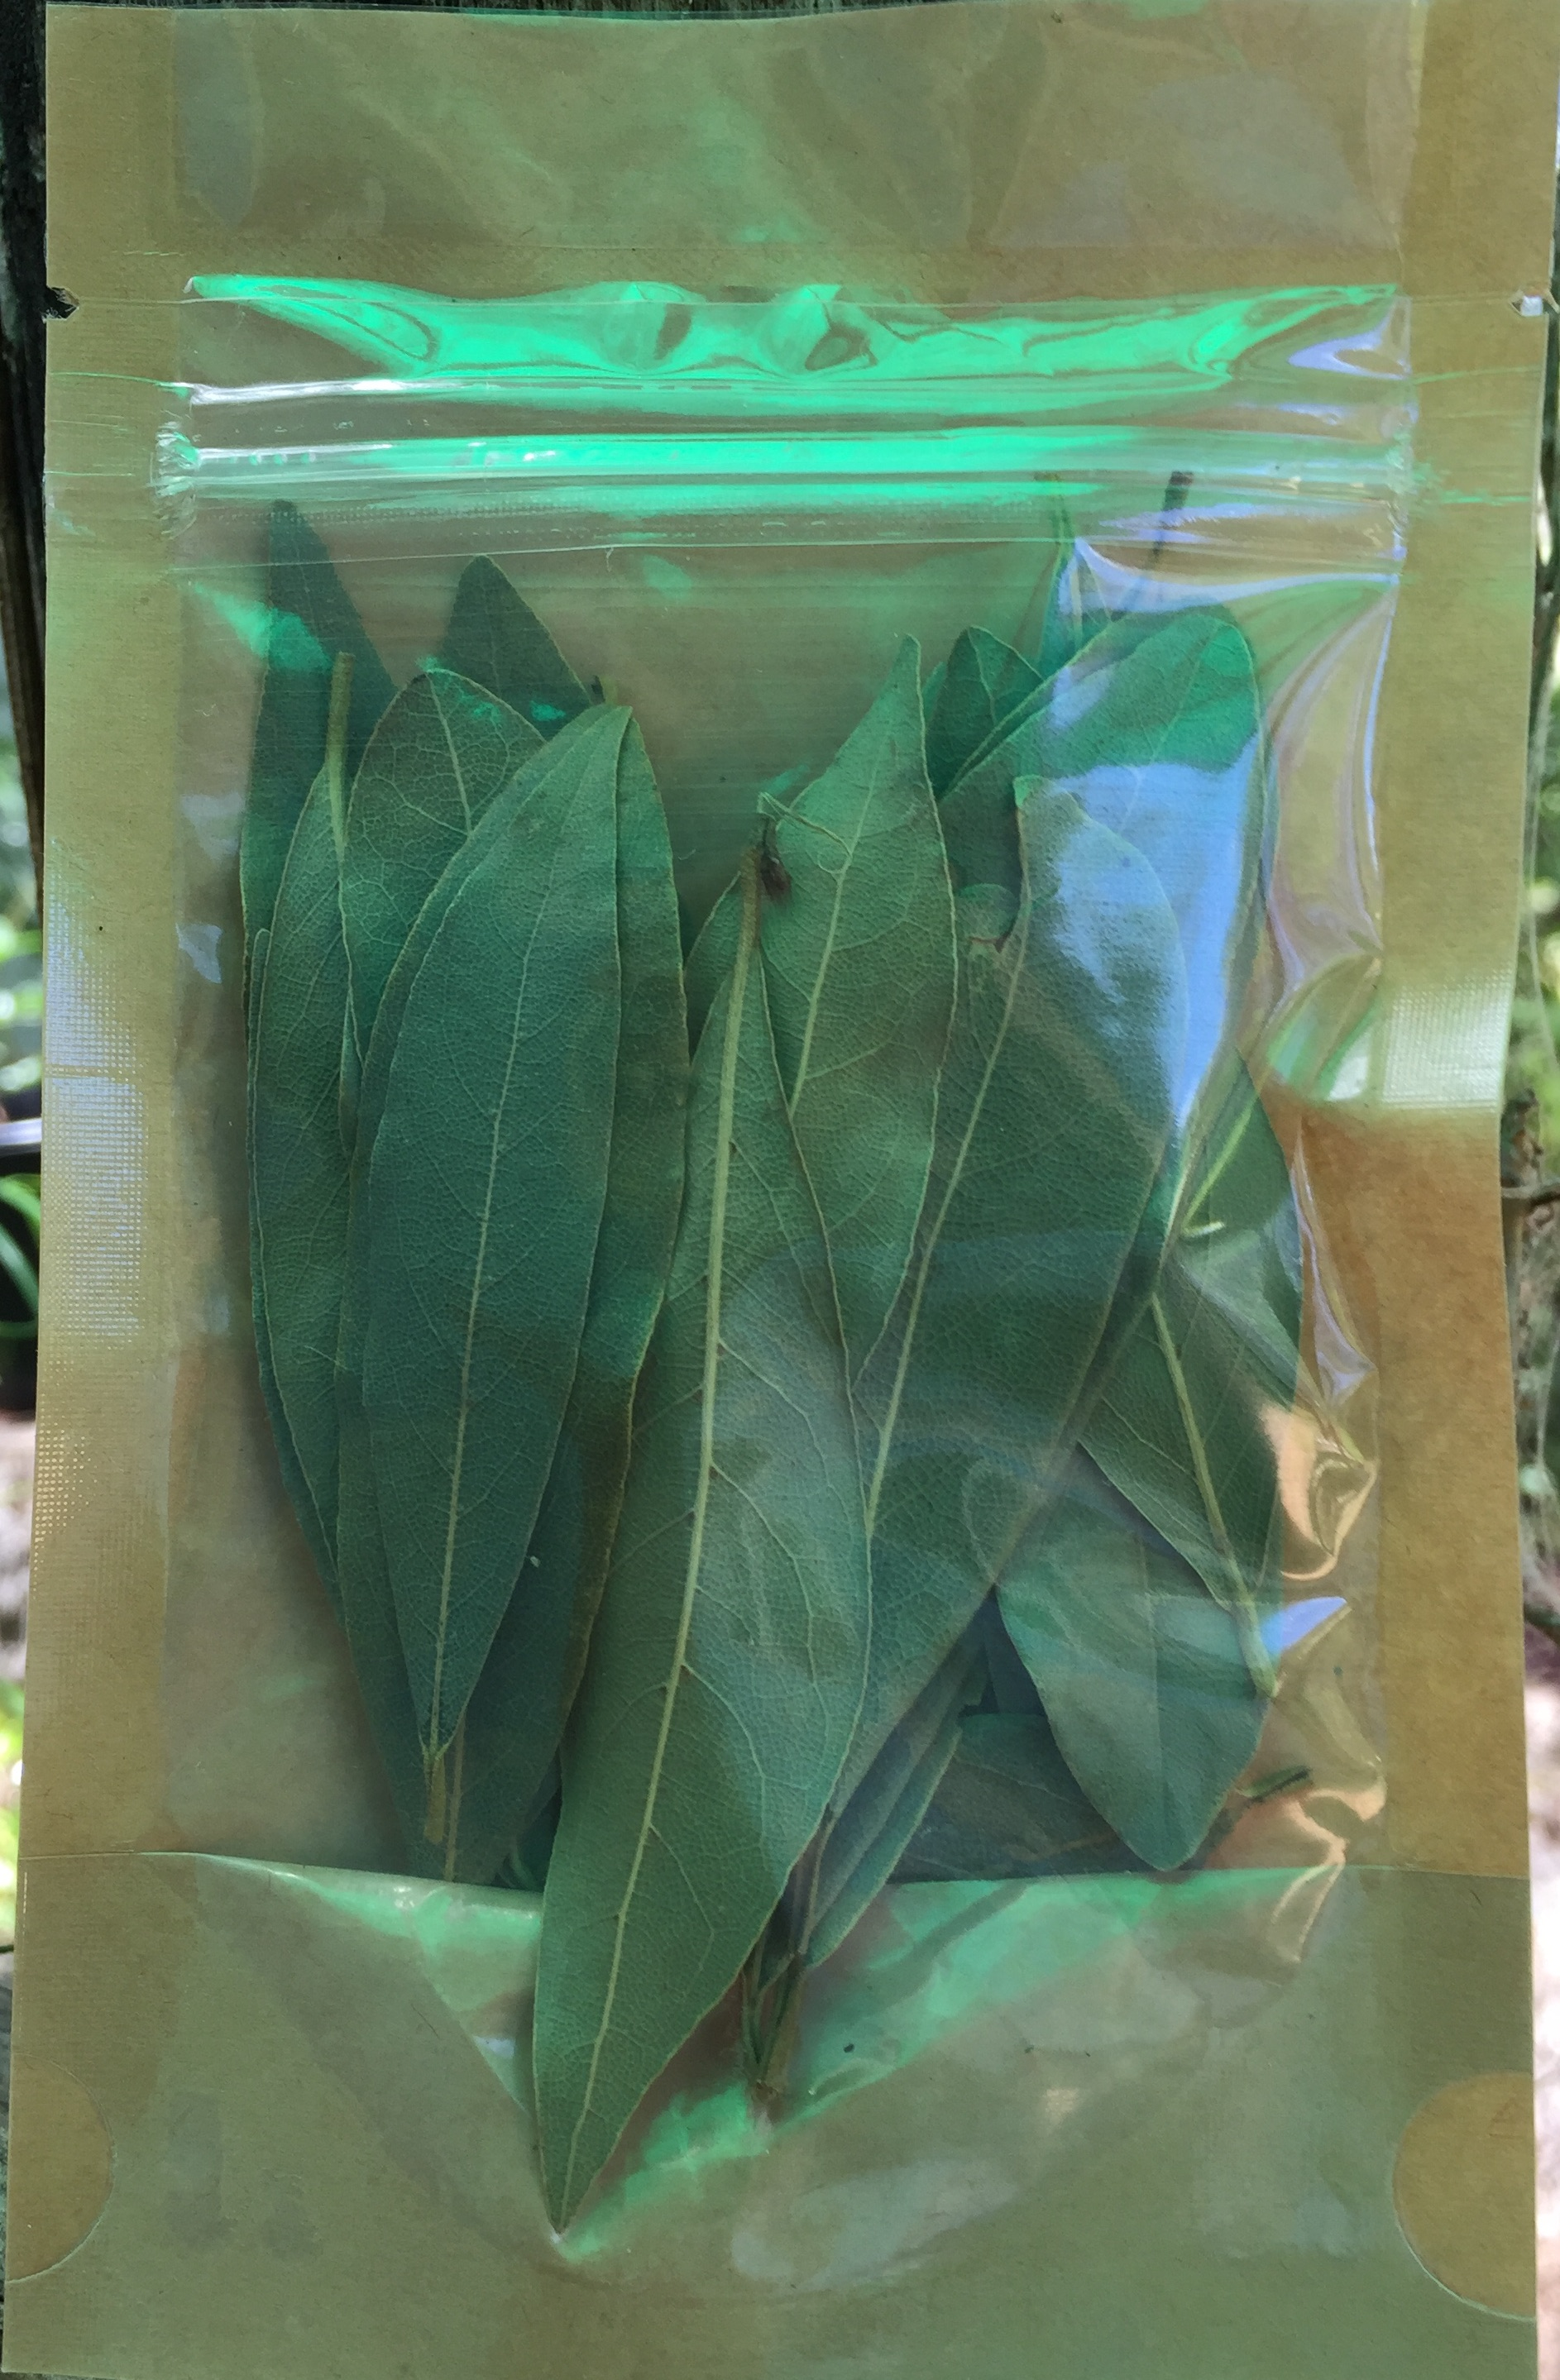 Dried Bay Leaves - New packaging